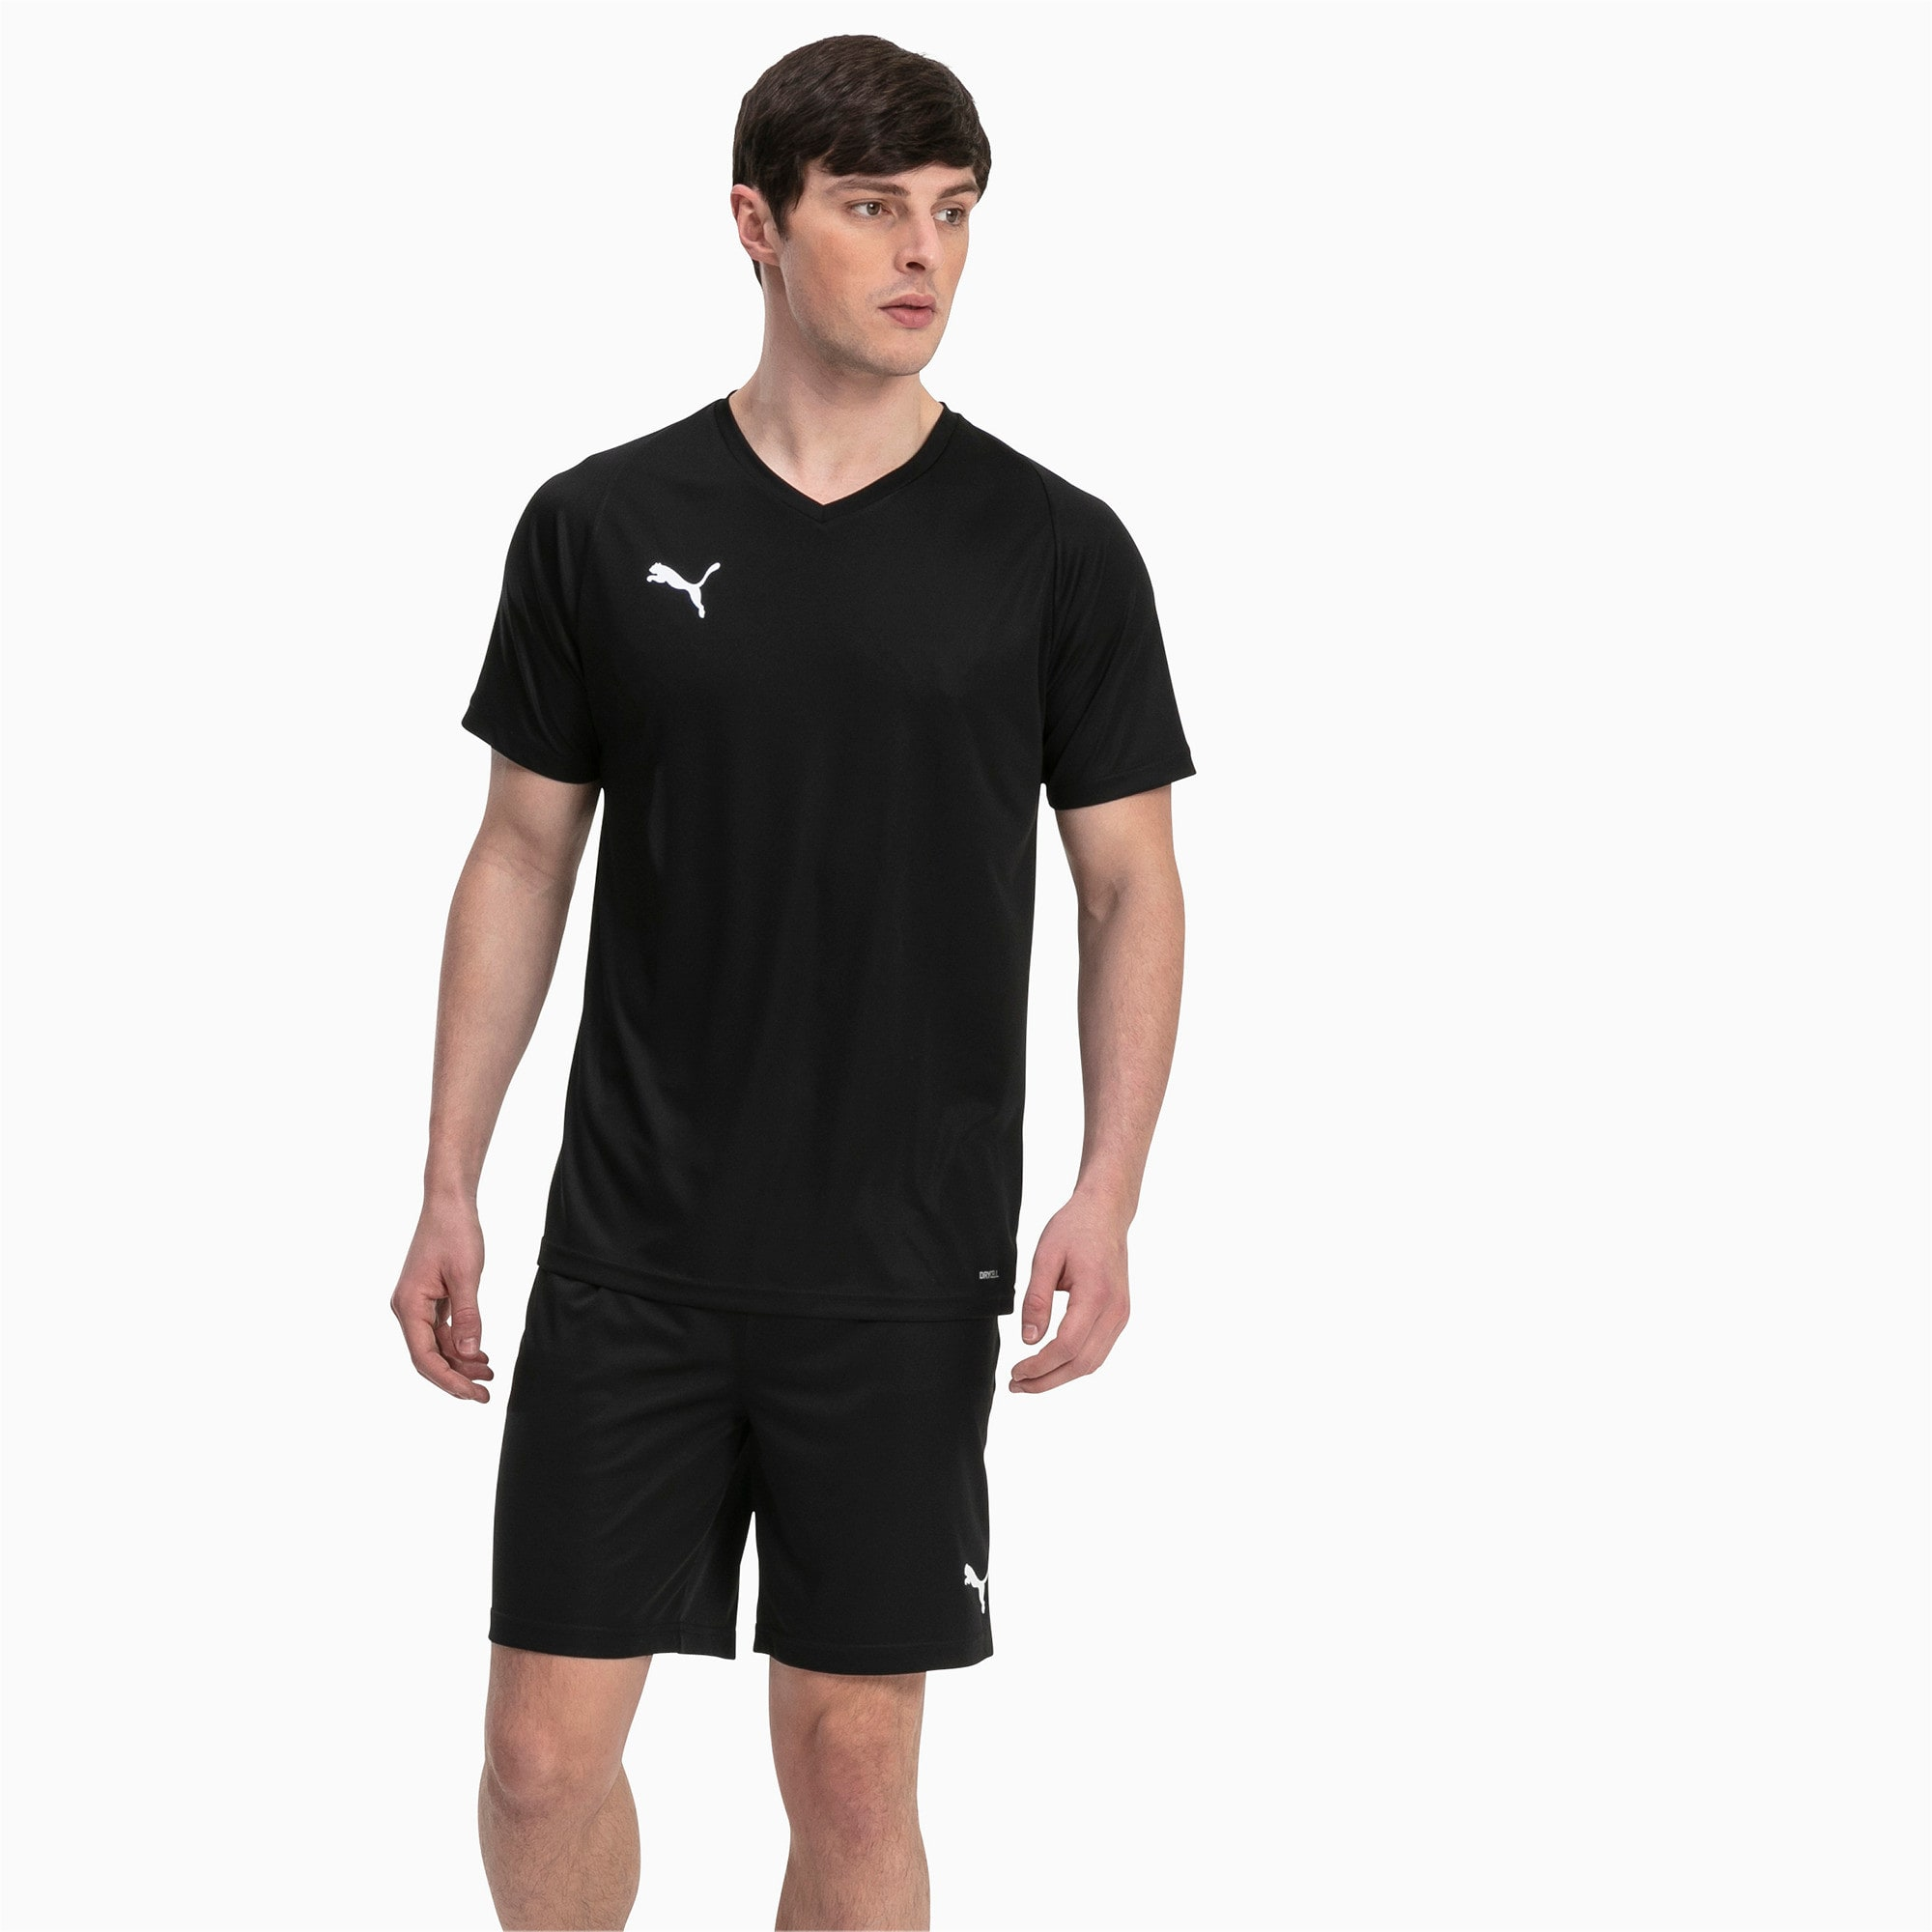 Thumbnail 3 of Liga Core Men's Jersey, Puma Black-Puma White, medium